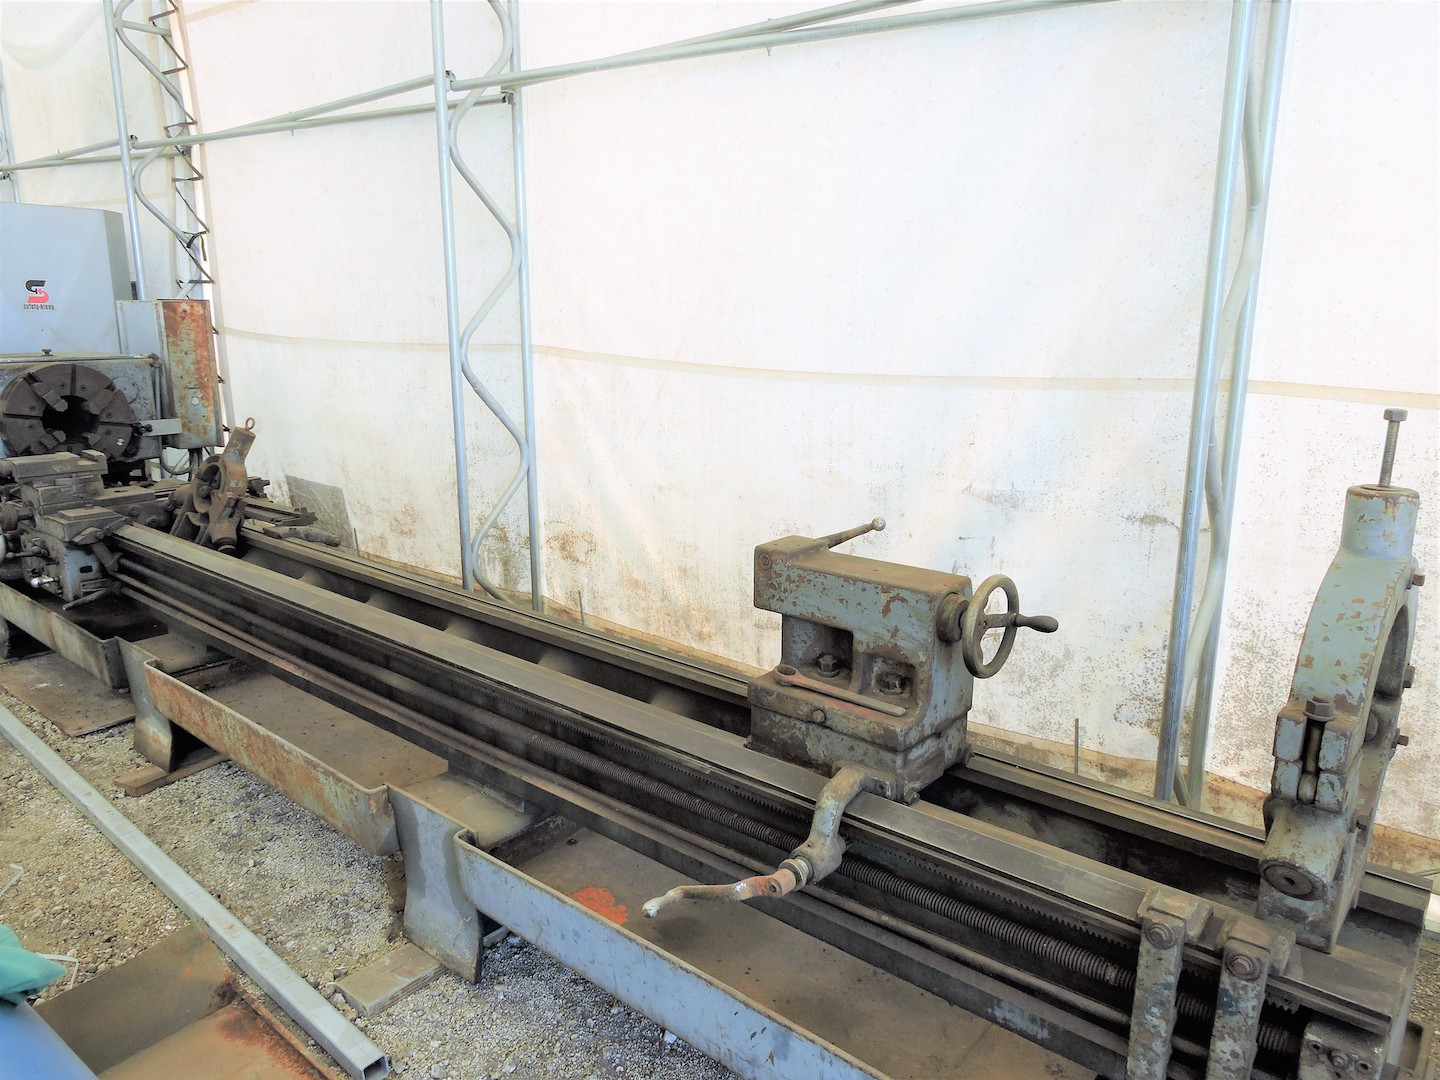 "Lot 2 - LE BLOND REGAL 27"" X 200"" MODEL 24 HOLLOW SPINDLE OIL COUNTRY ENGINE LATHE: S/N 8939-5-6-ME-15; 9"""